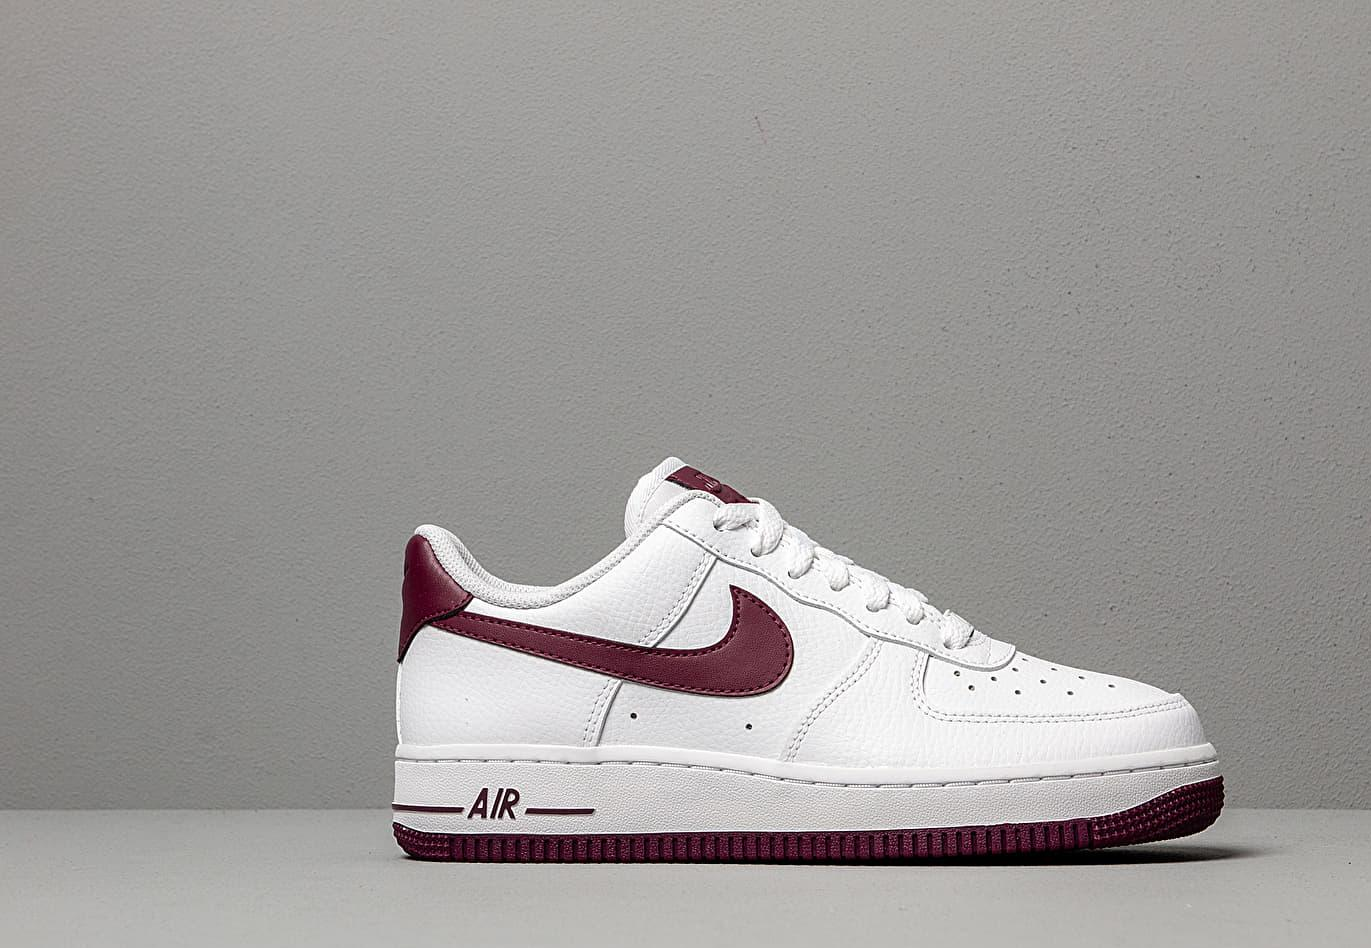 5ad29e41adc Nike Wmns Air Force 1 '07 White/ Bordeaux in White - Lyst